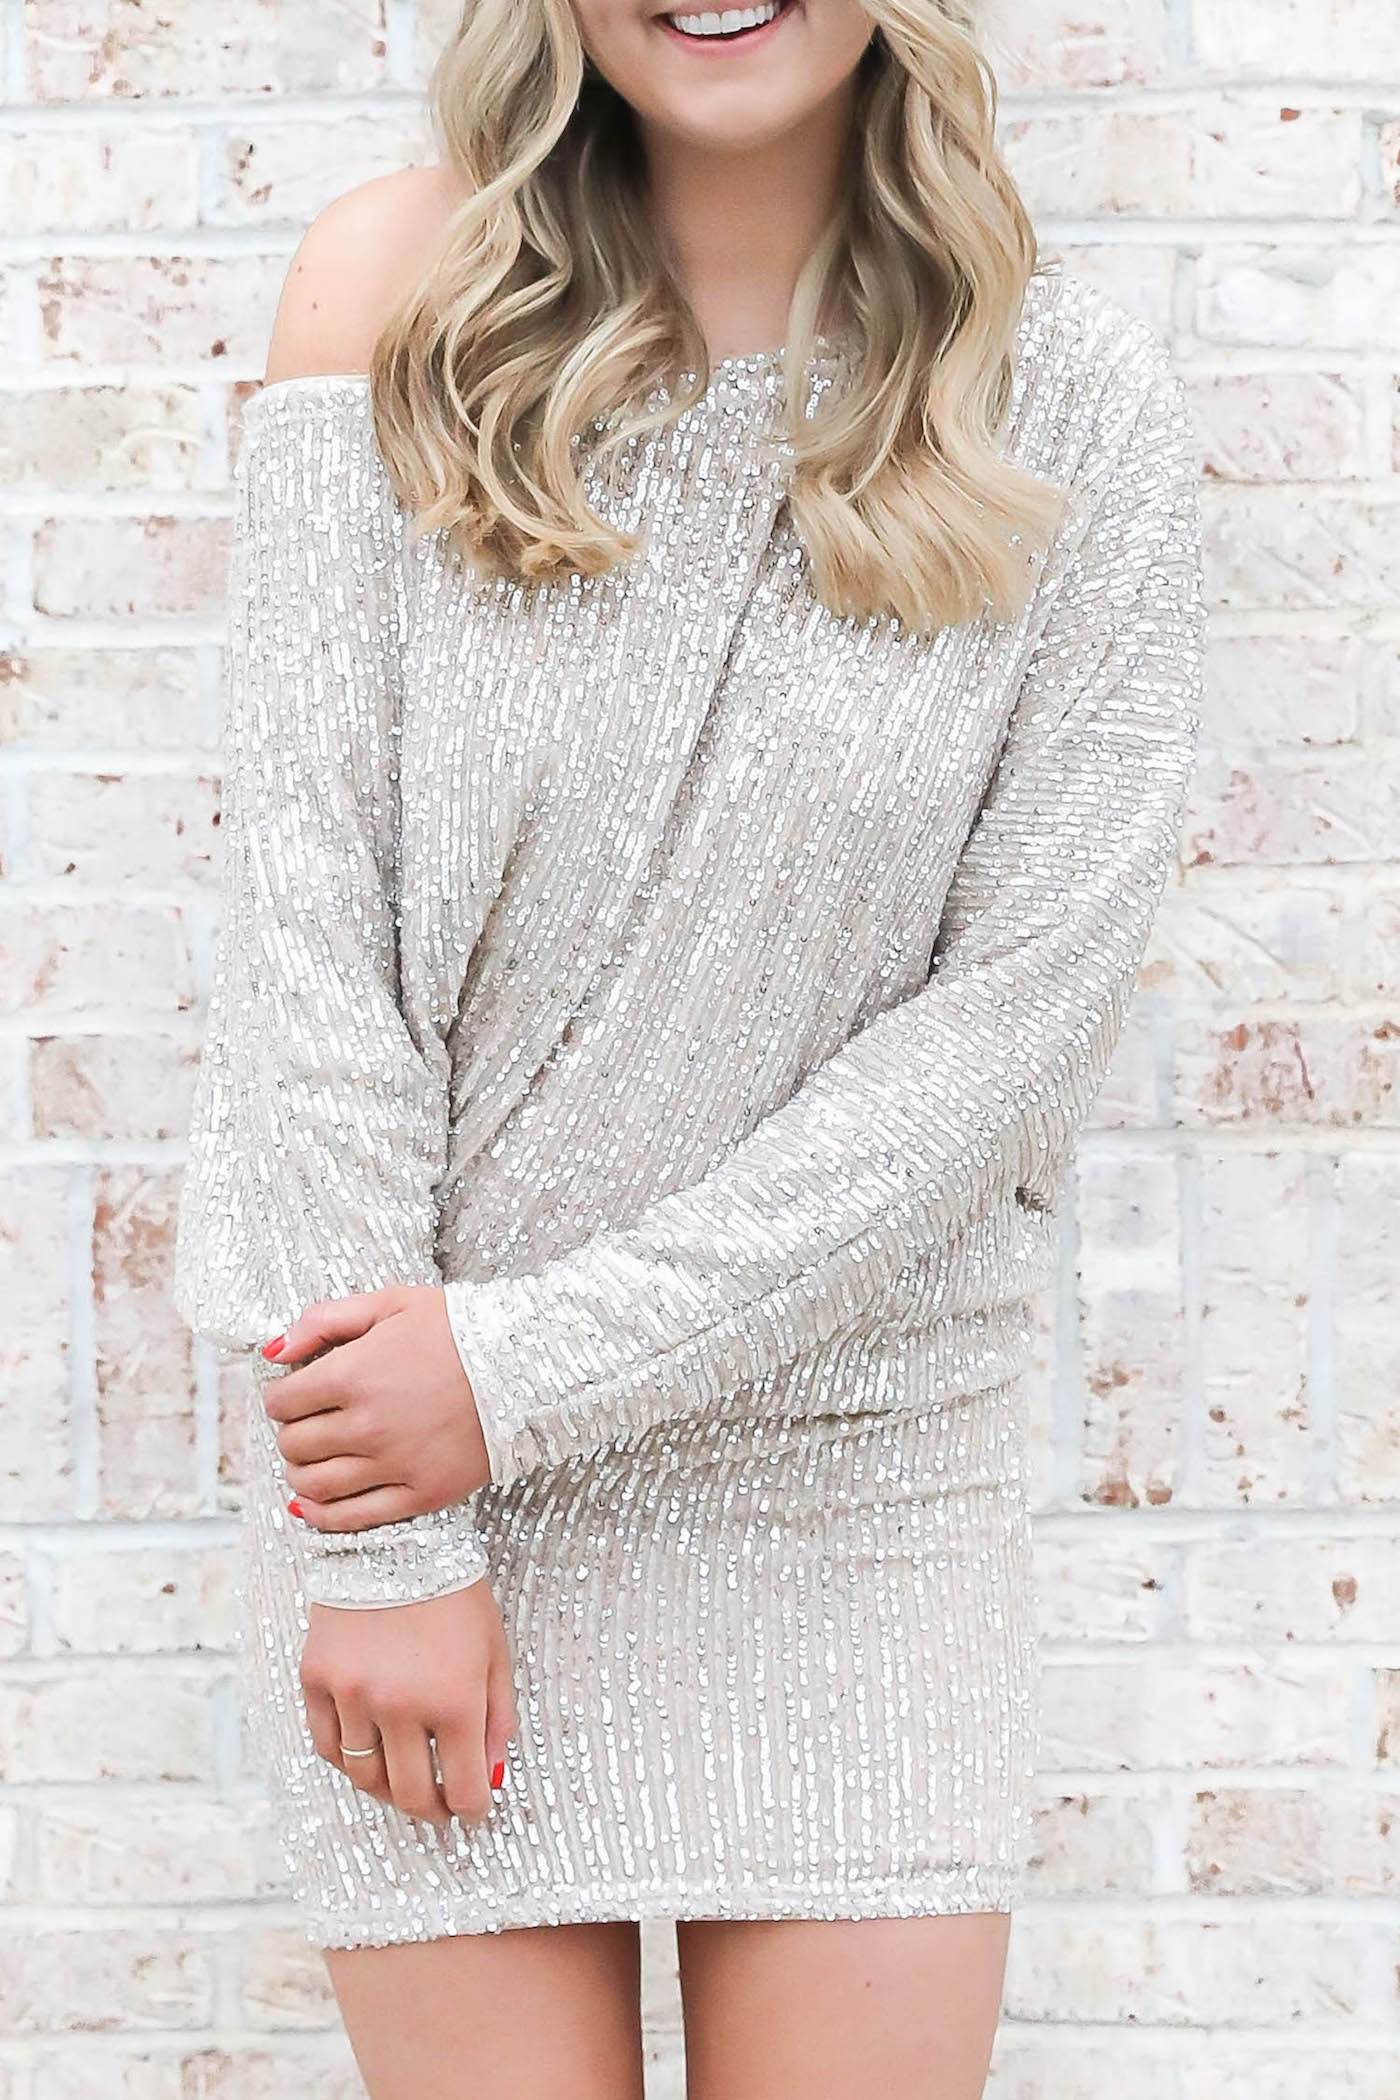 Holiday dress roundup christmas and new year's eve daily dose of charm lauren lindmark